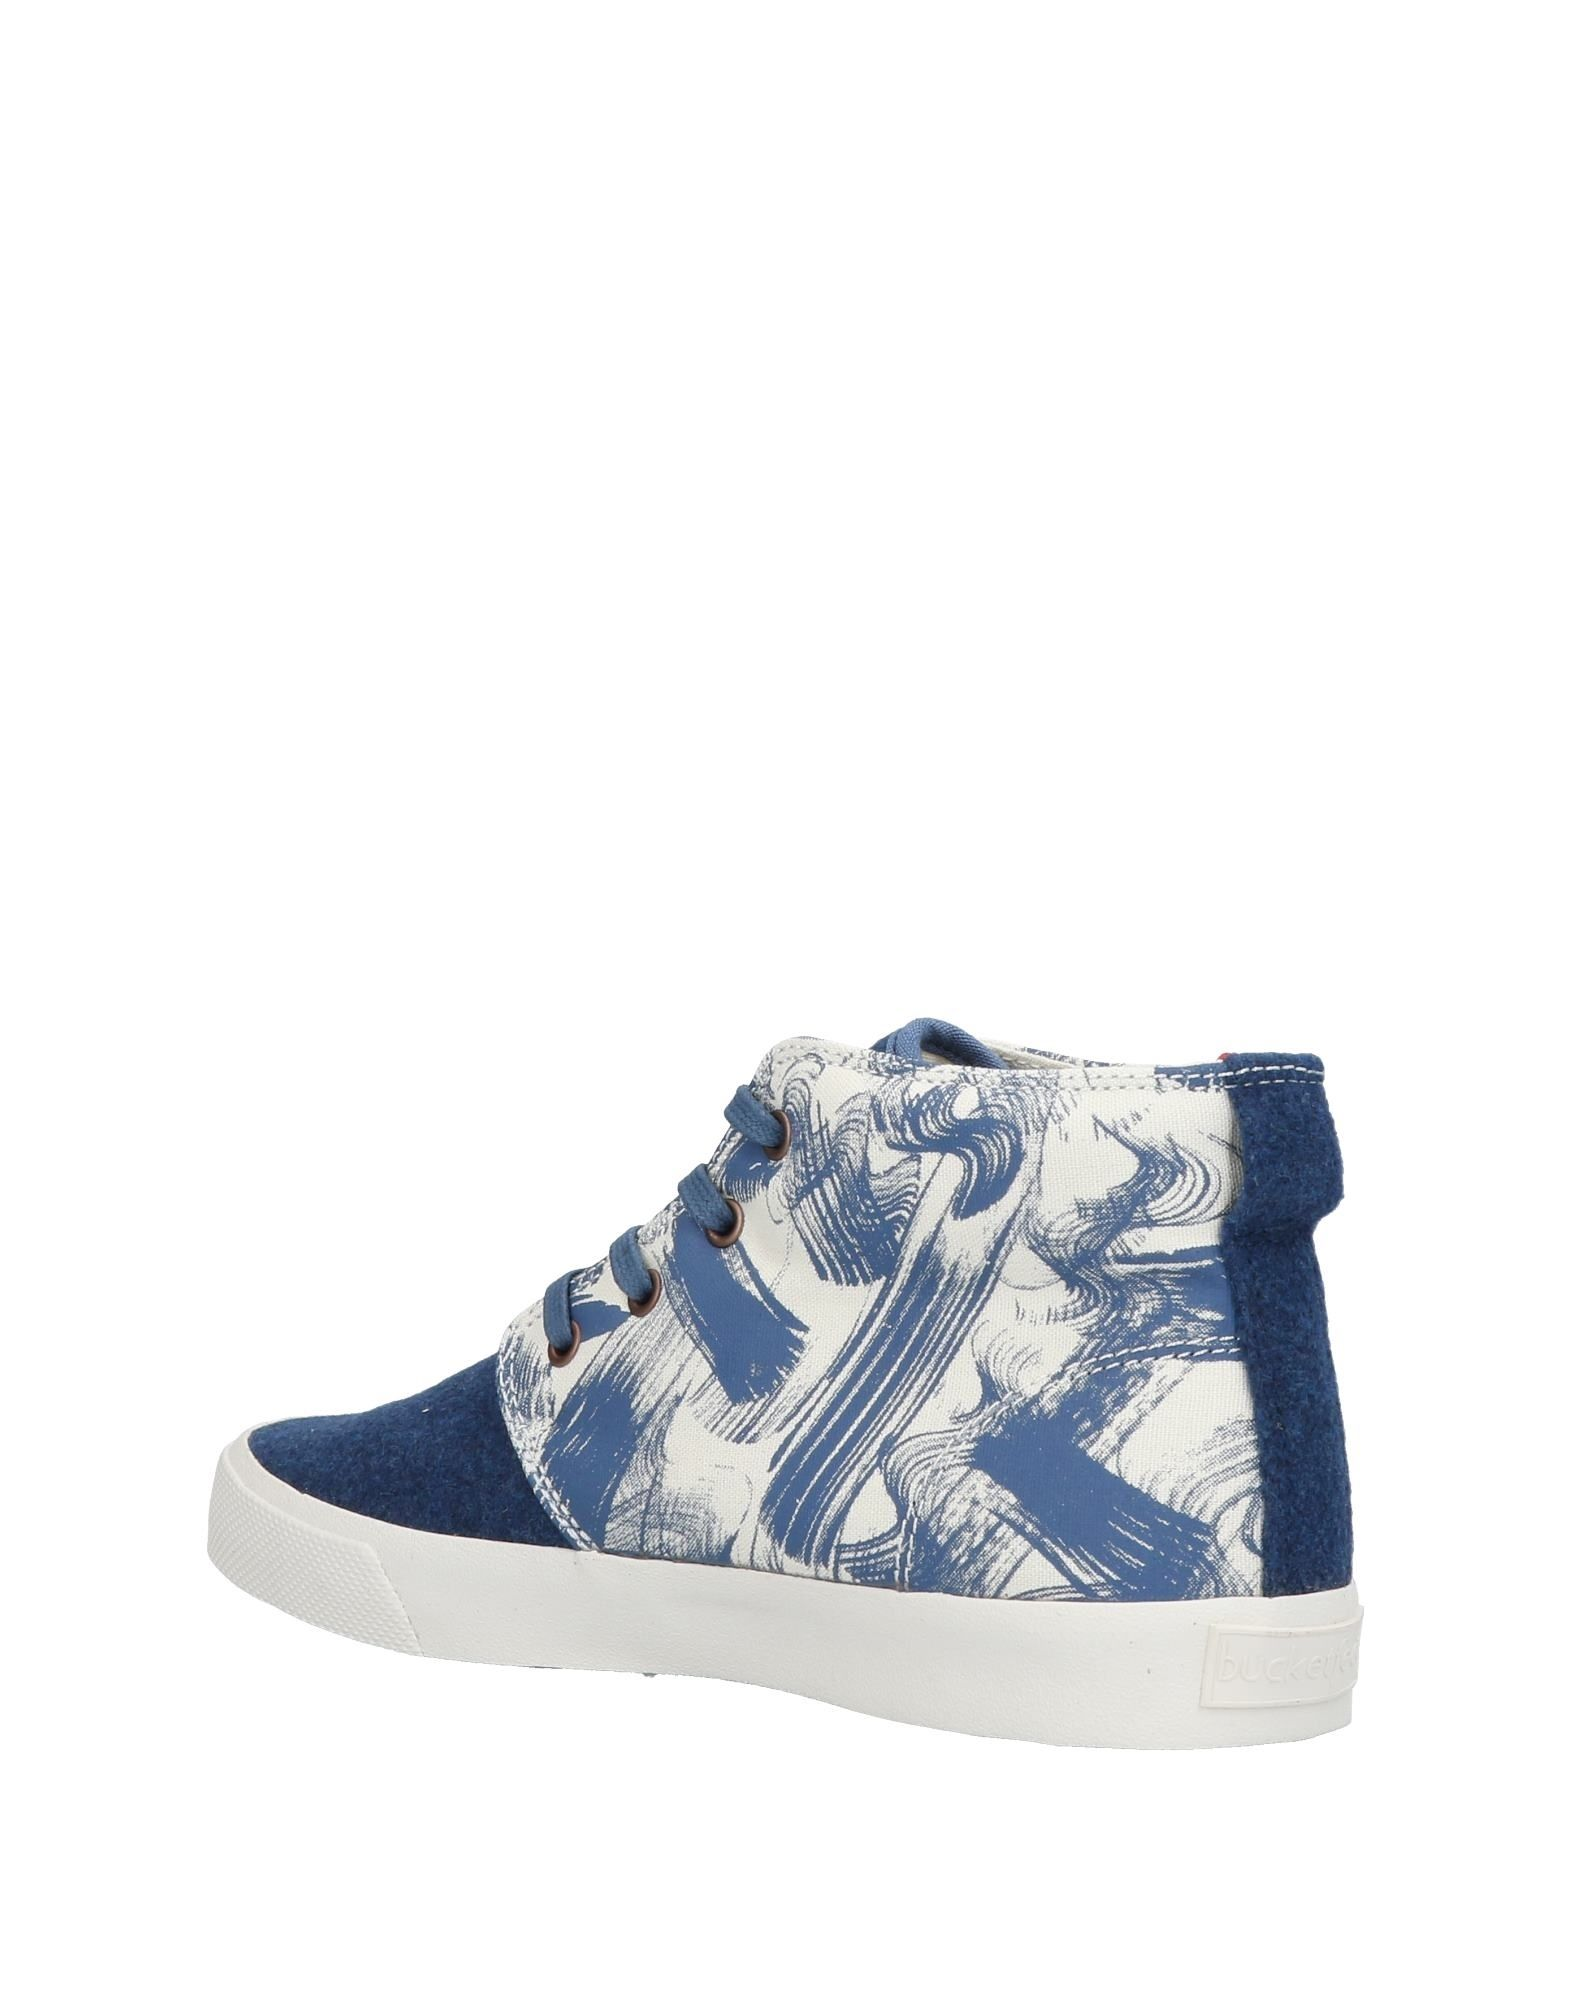 Sneakers Bucketfeet Femme - Sneakers Bucketfeet sur